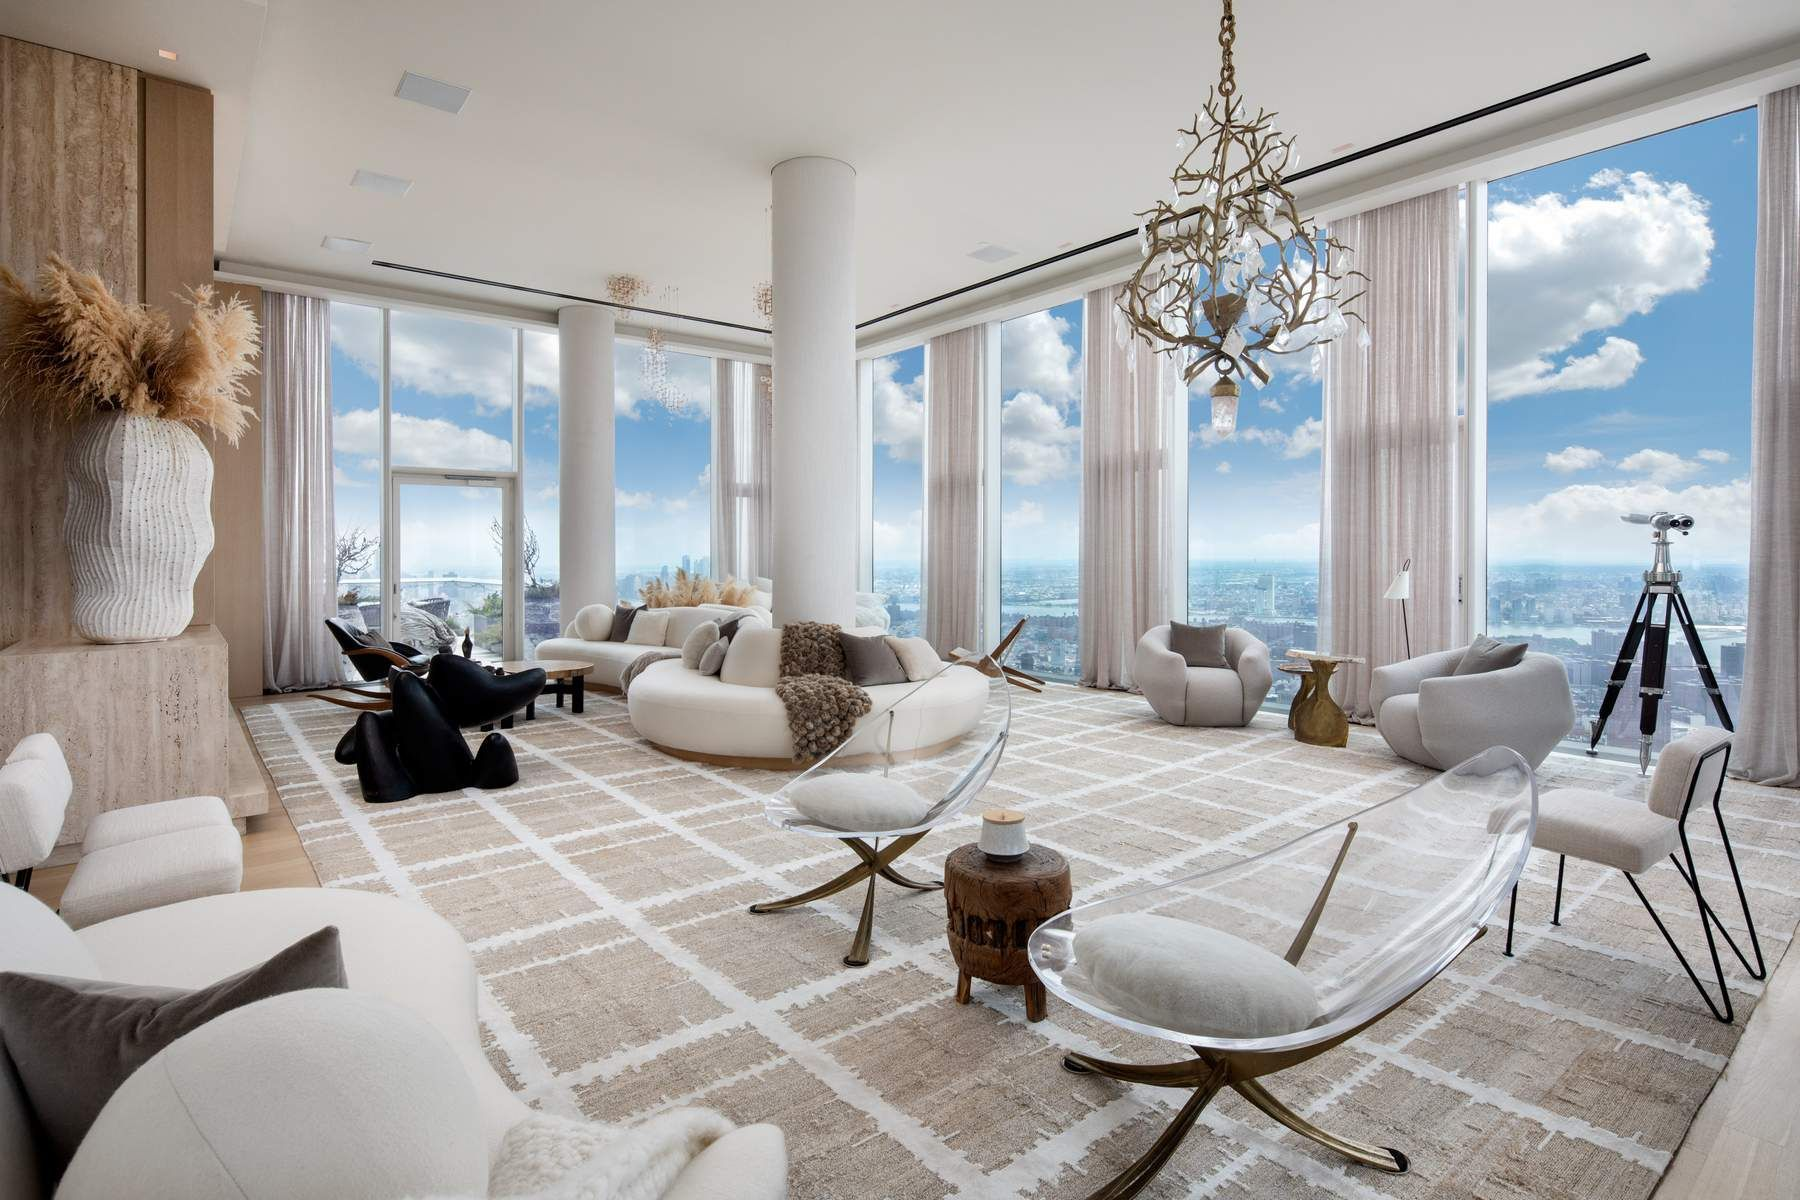 Rare opportunity to own a spectacular, one-of-a-kind, full-floor Penthouse in the heart of Tribeca, perched above the clouds on the 58th floor.  Penthouse 58 is a stunning 5,489 square foot glass-wrapped home with soaring 14 ft ceilings, two Terraces and unobstructed, panoramic views from river to river, as well as iconic NYC skyline views.   No expense was spared in the meticulous renovation of the entire residence by Reber Design Architecture and Emma Donnersberg Interiors.    The elevator opens directly into a formal Entry Gallery, which leads to a breathtaking Great Room with two Terraces and views of the Brooklyn, Manhattan, and Williamsburg Bridges.  The space features a washed oak and Roman travertine sculptural structure, which incorporates a concealed TV and a two-sided wood-burning fireplace, log storage, bench and entry console.  With 745 feet of private outdoor space off of the Great Room, as well as off of the Kitchen and Library, the possibilities for indoor/outdoor living and entertaining are endless here!  The open Chef's Kitchen, overlooking the Freedom Tower and Woolworth Building, boasts a quartzite island and countertops, double Sub-Zero refrigerator, Miele double oven, six-burner cook top with vented hood and two dishwashers and oak and satin-etched glass cabinets that provide abundant storage space.  Off of the Kitchen is a granite and brass 575-bottle Wine Closet and a marble Bar, both hidden behind washed oak doors.  Across the Gallery is the Library with windows framing the Empire State Building, beautiful textured wood sliding doors and floor-to-ceiling millwork boxes adding tremendous warmth and character.    A skyline view central hallway leads you to the home's five Bedrooms, all with En-suite Bathrooms.  The Master Suite features a fireplace, a serene Sitting Room off of the home's wraparound Terrace, an enormous walk-in closet and a spa-like, limestone Master Bathroom with radiant heated floors, double sink, steam shower and deep soaking tub.   Other features include Appalachian solid white oak flooring throughout the residence, 4-pipe heating and cooling system that allows for year-round climate control, motorized solar shades and curtains, Crestron lighting system, high-tech AV and security system, Laundry Room with washer, vented dryer and utility sink and a private Storage Unit in the building.  56 Leonard Street Condominium is an architectural masterpiece, designed by acclaimed firm Herzog & de Meuron, that has changed the skyline of Manhattan.  It is a luxury, full-service building with 17,000 square feet of unparalleled amenities including a 75 foot lap pool with sundeck, state-of-the-art gym, screening room, lounge, private dining room, children's playroom, live-in resident manager and on-site parking.    Call now for your private viewing of this truly special property.